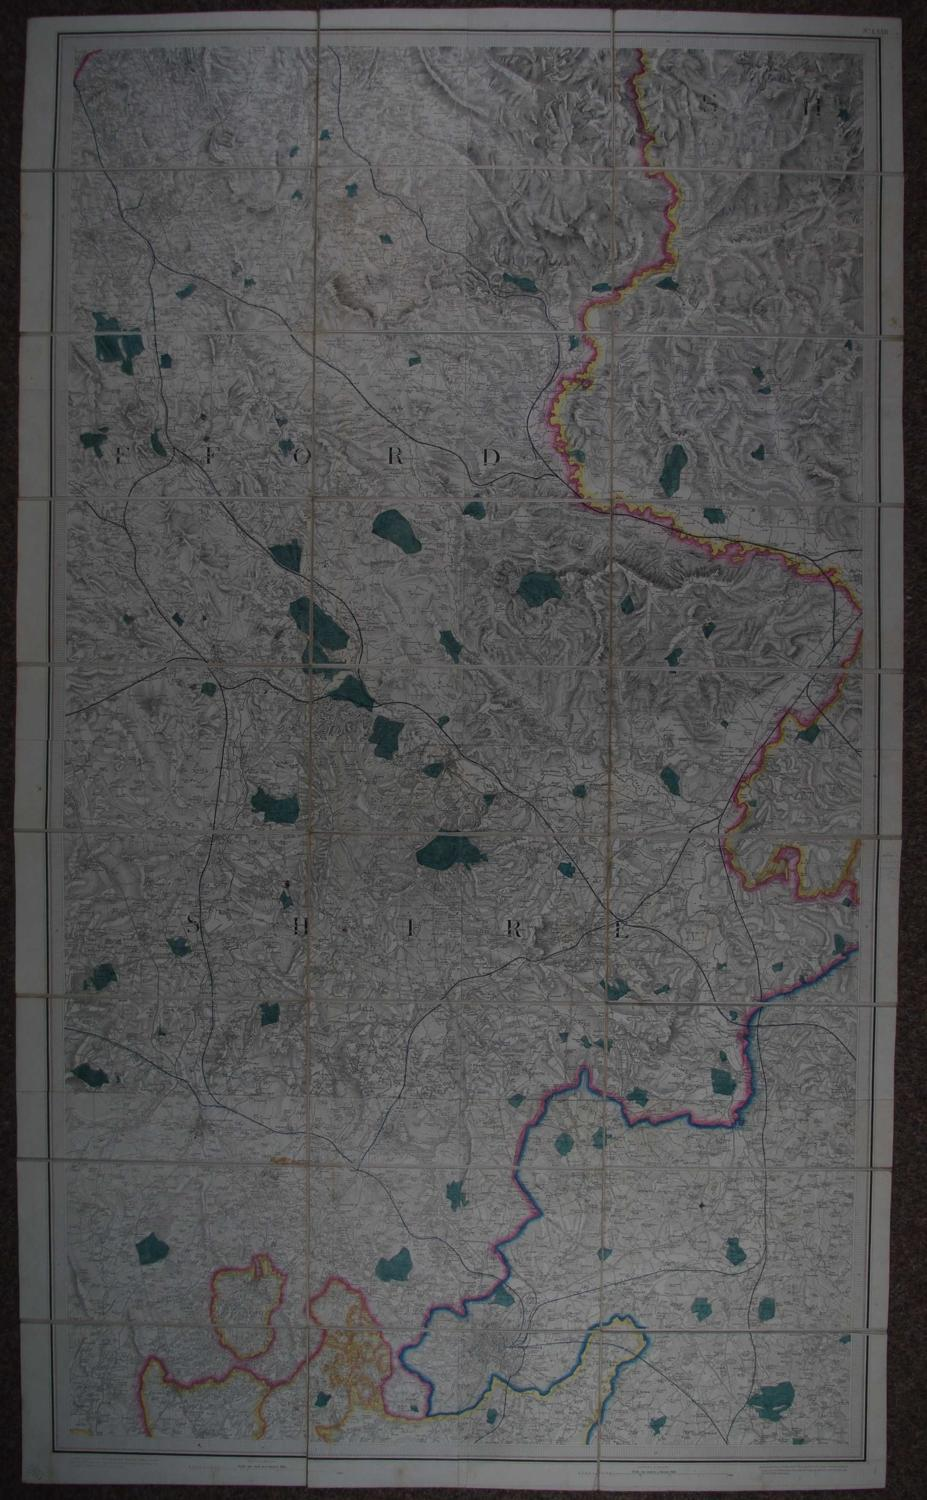 (Worcestershire) by Ordnance Survey  (Worcestershire)